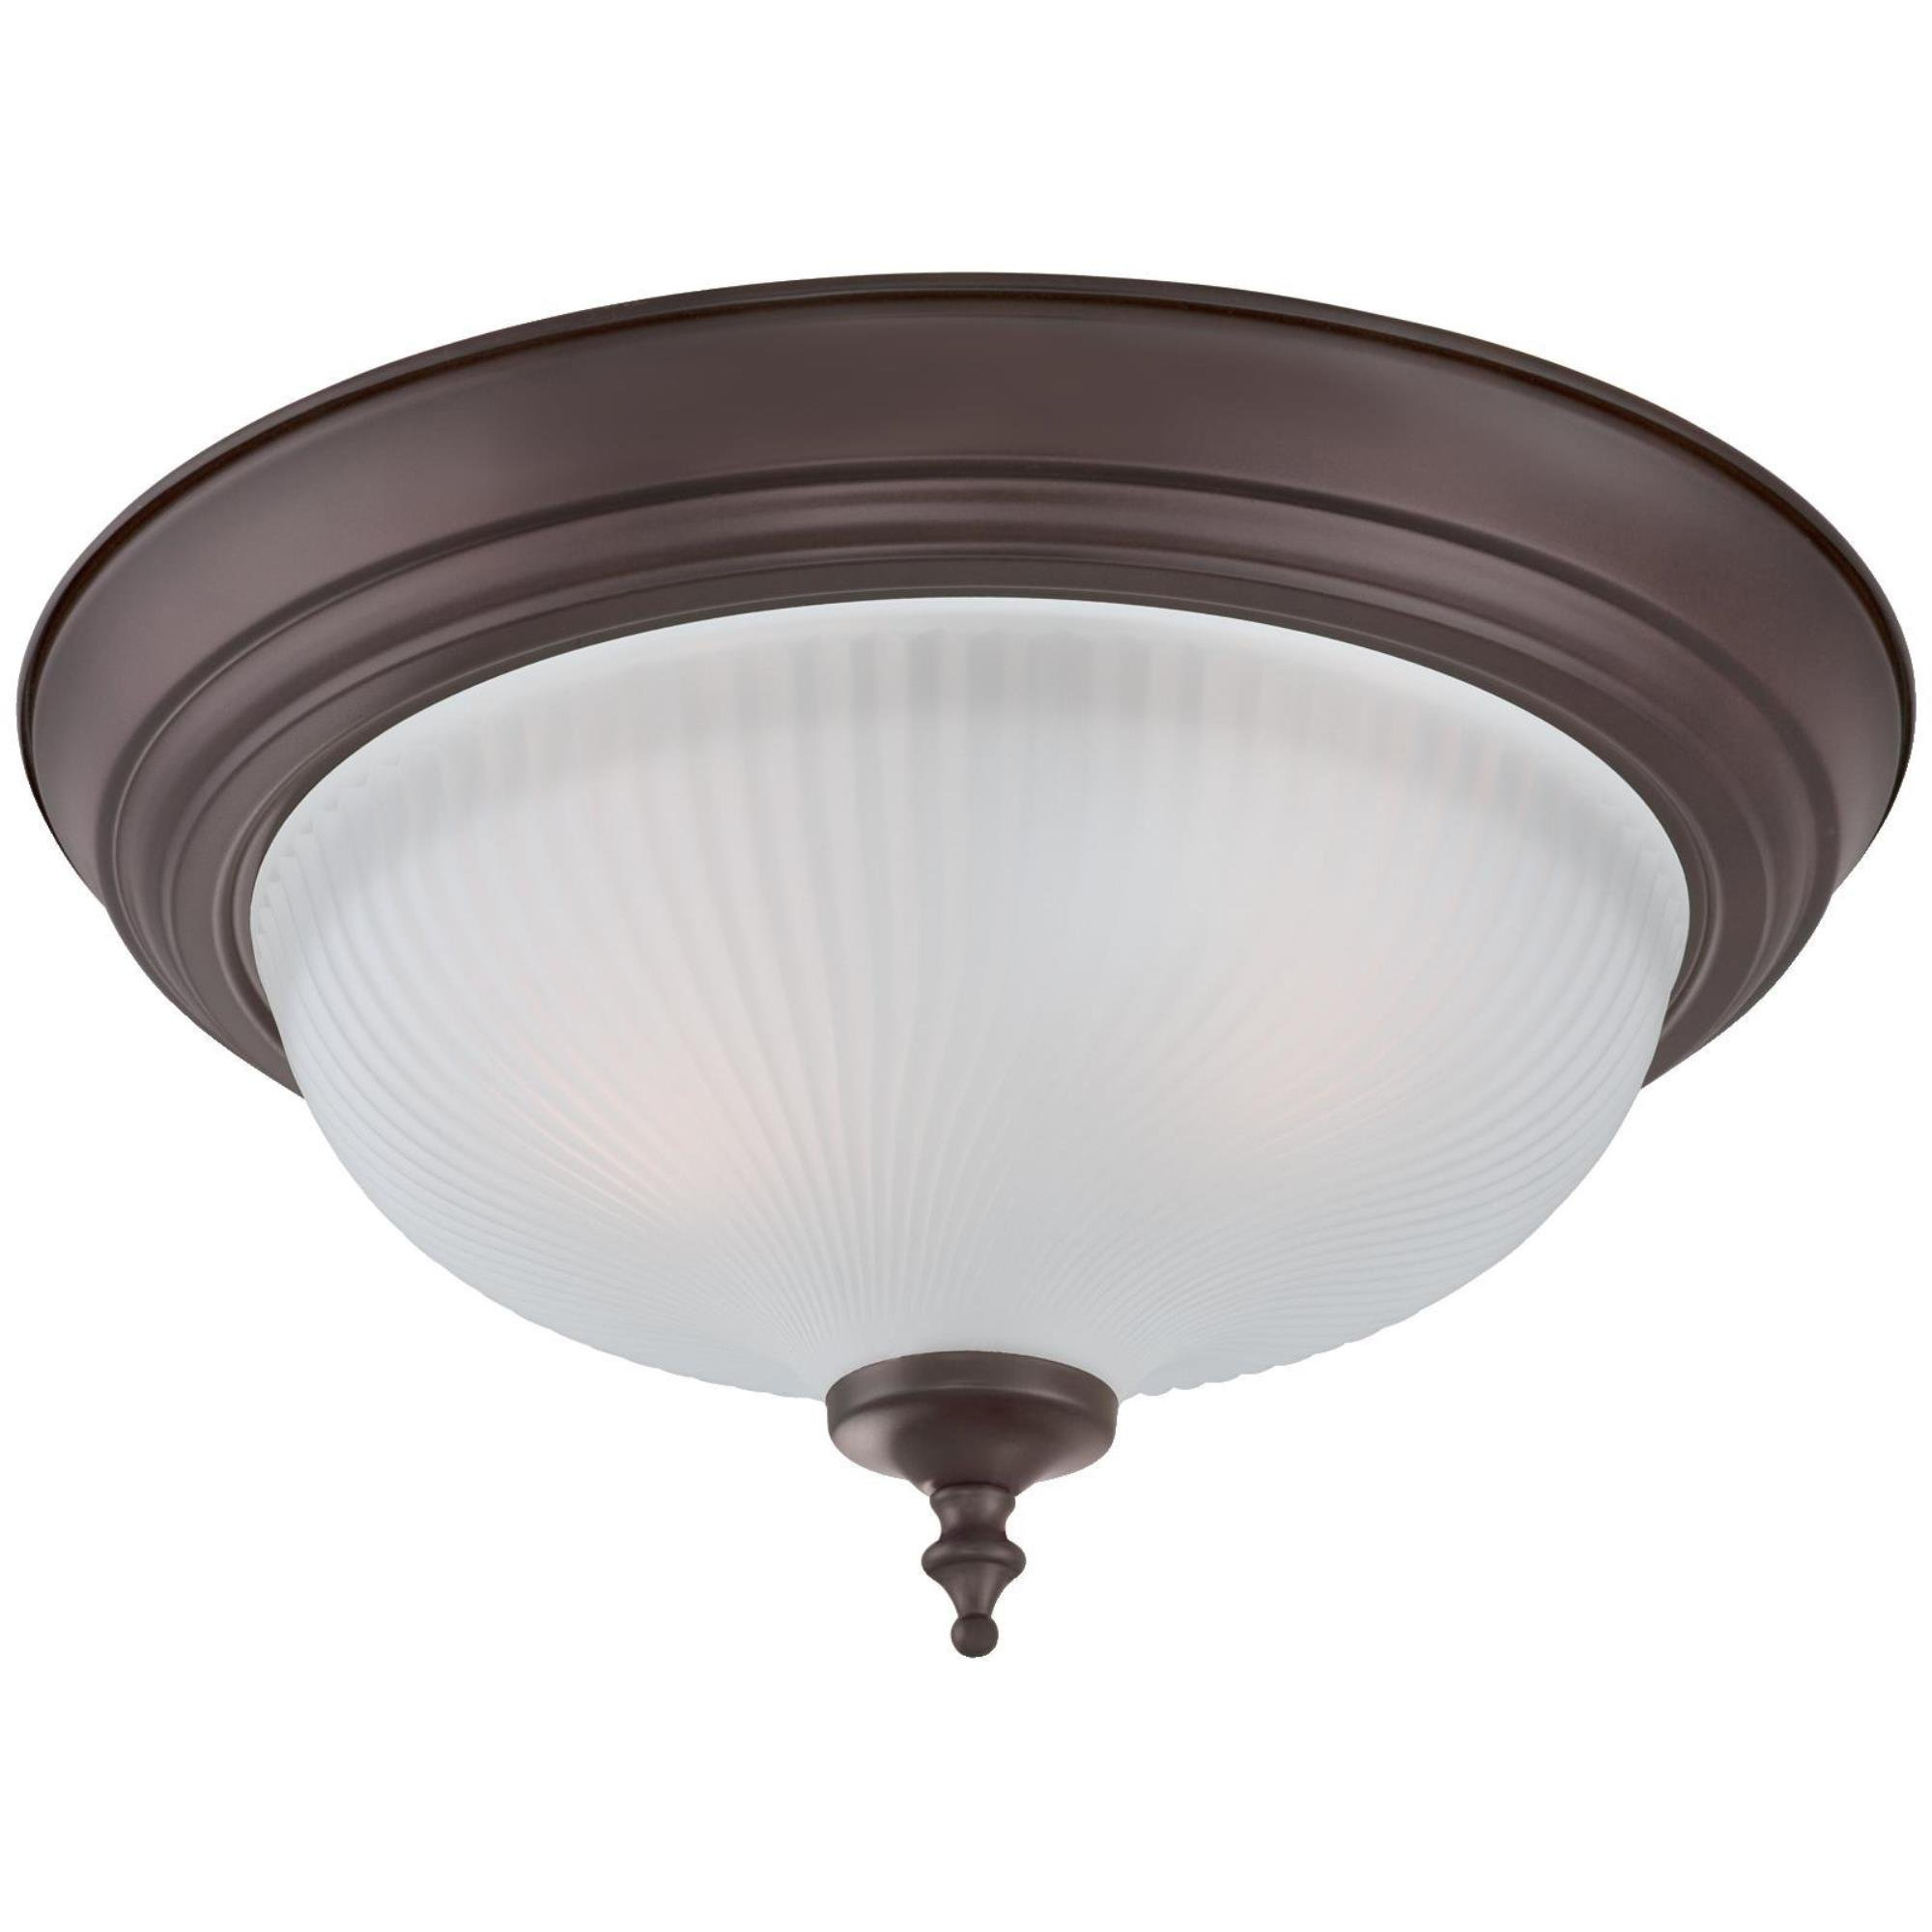 Westinghouse 6344500 Two-Light Indoor Flush Ceiling Fixture (2 Pack), Oil Rubbed Bronze Finish with Frosted Swirl Glass